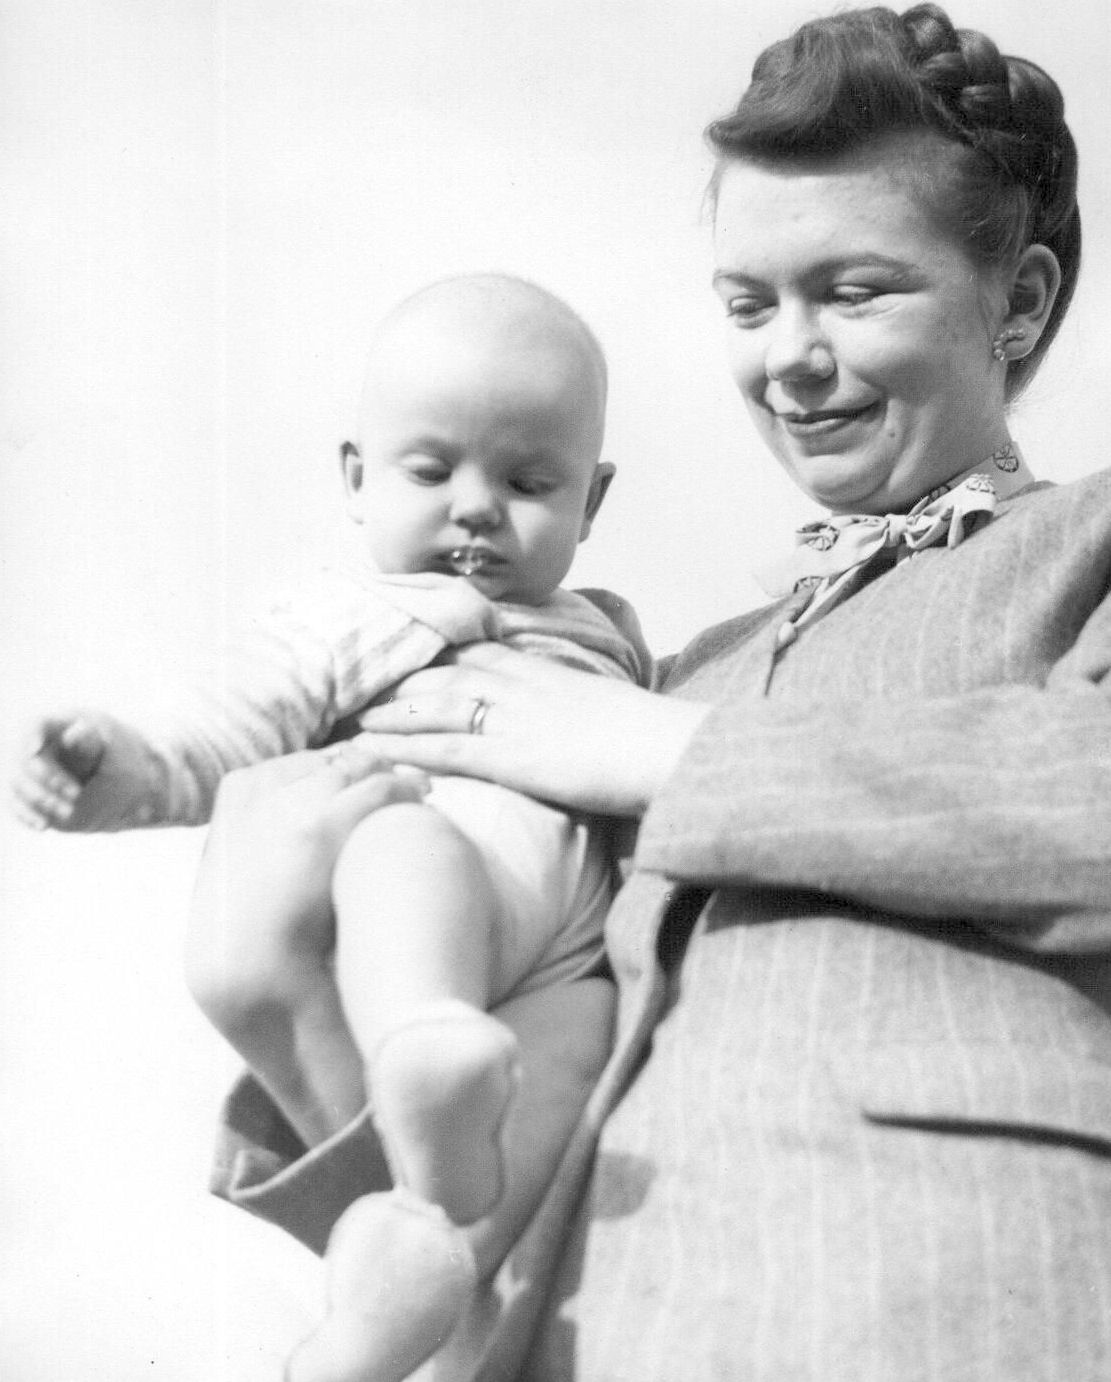 Paul and Mom, 1947